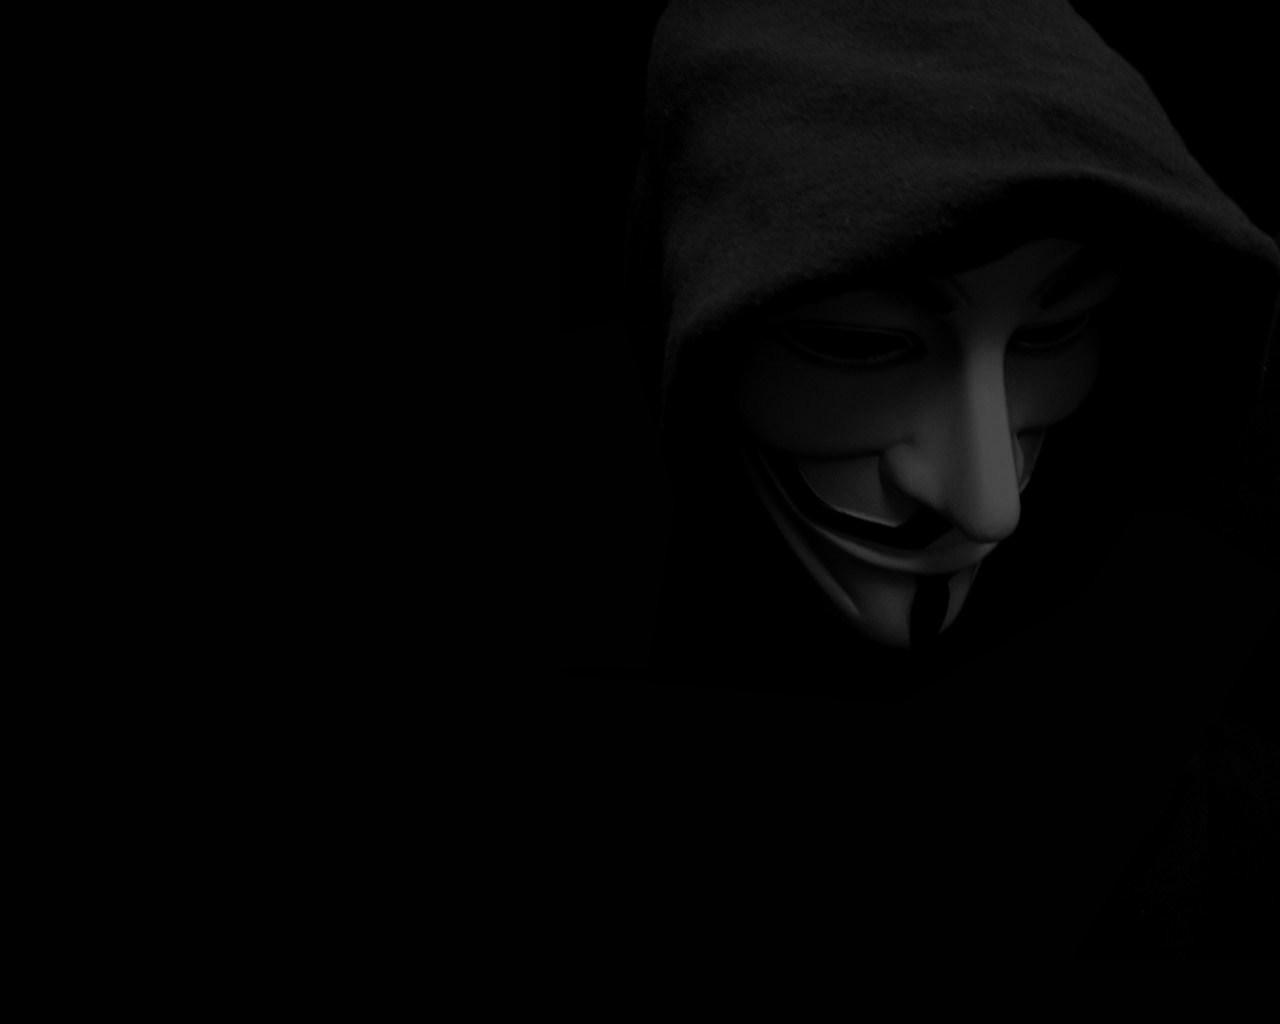 V For Vendetta Wallpaper and Background 1280x1024 ID63841 1280x1024